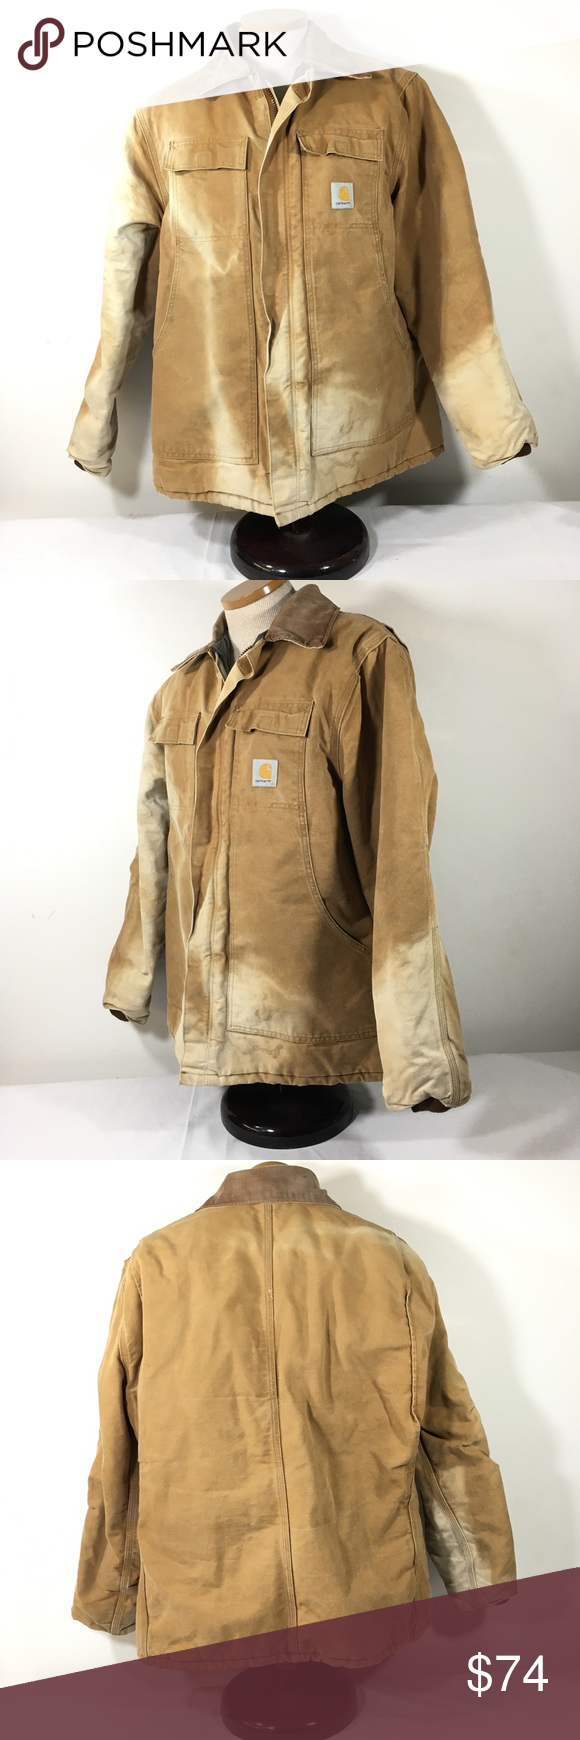 Carhartt Faded Work Coat Arctic Quilt Lined 46 Usa Carhartt